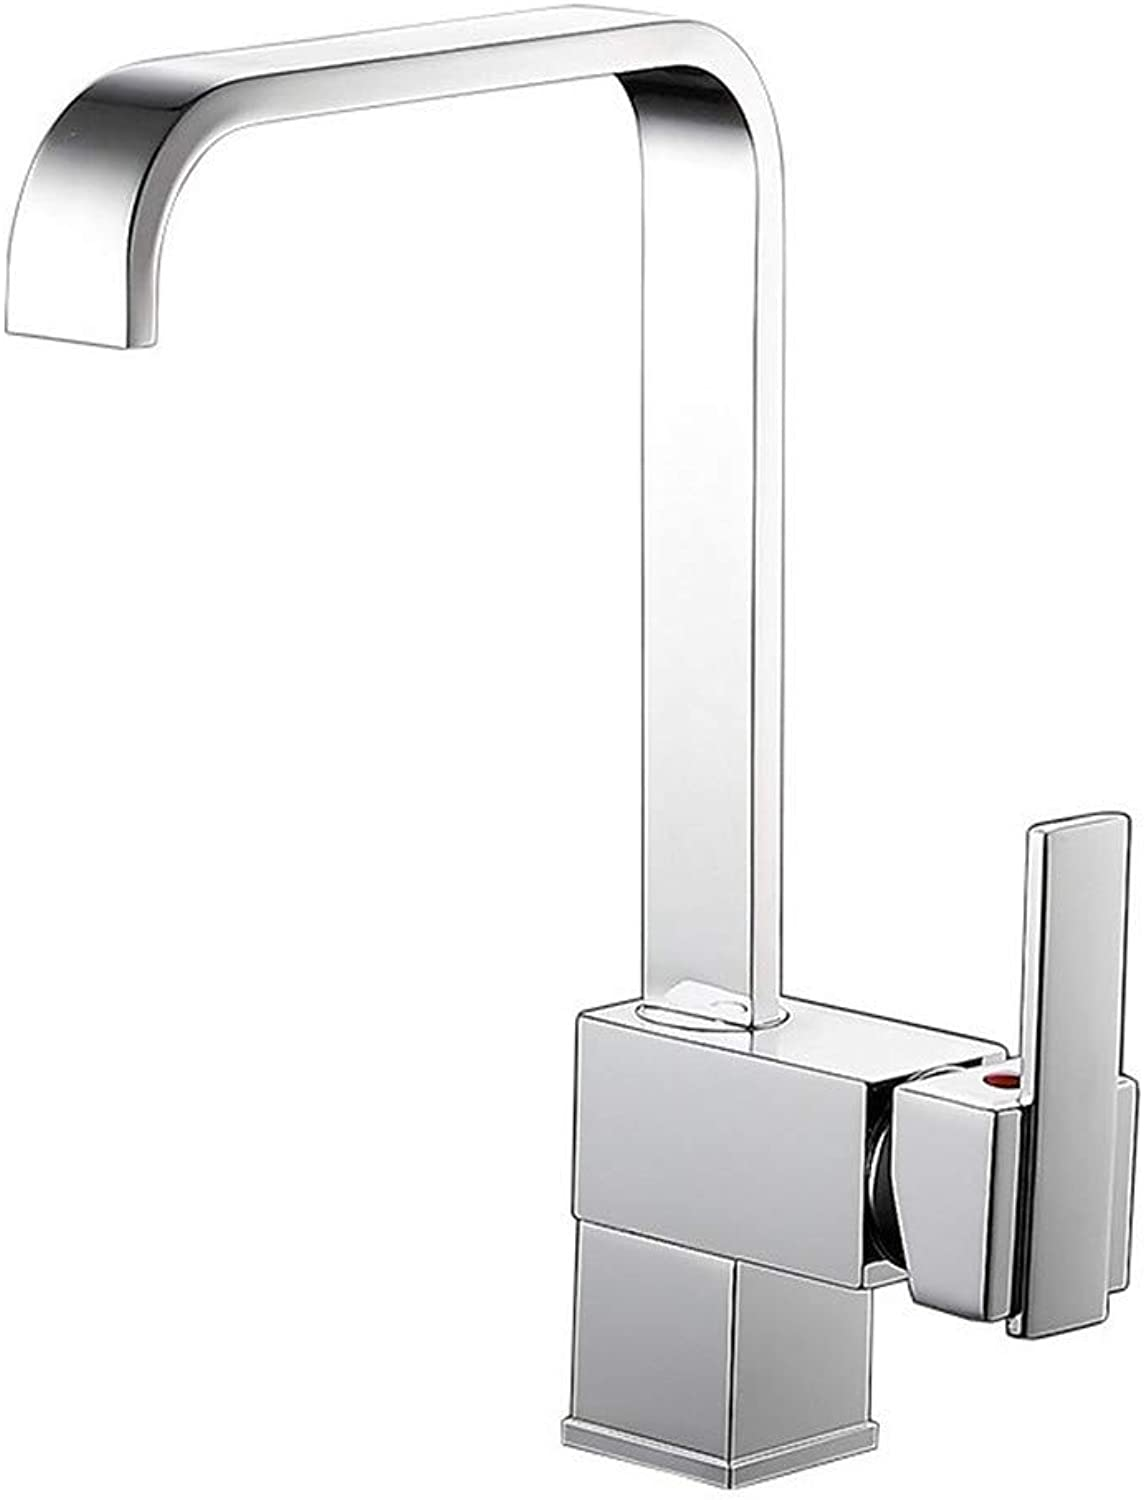 Square copper kitchen faucet, hot and cold water faucet, bathroom faucet